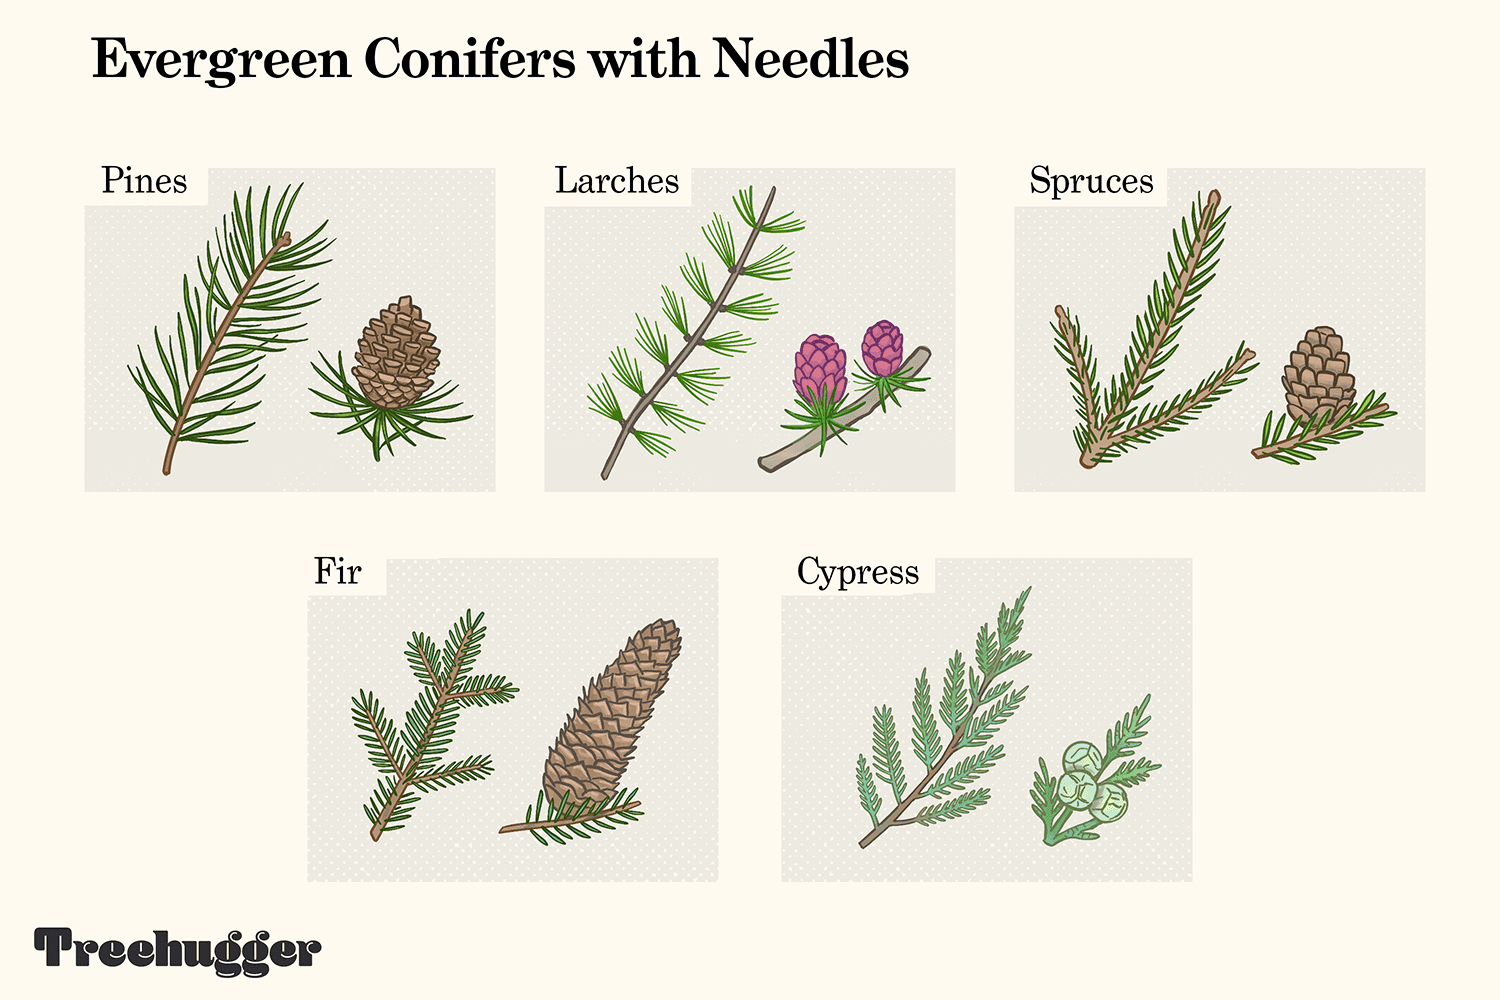 evergreen conifer trees with needle leaves illustration